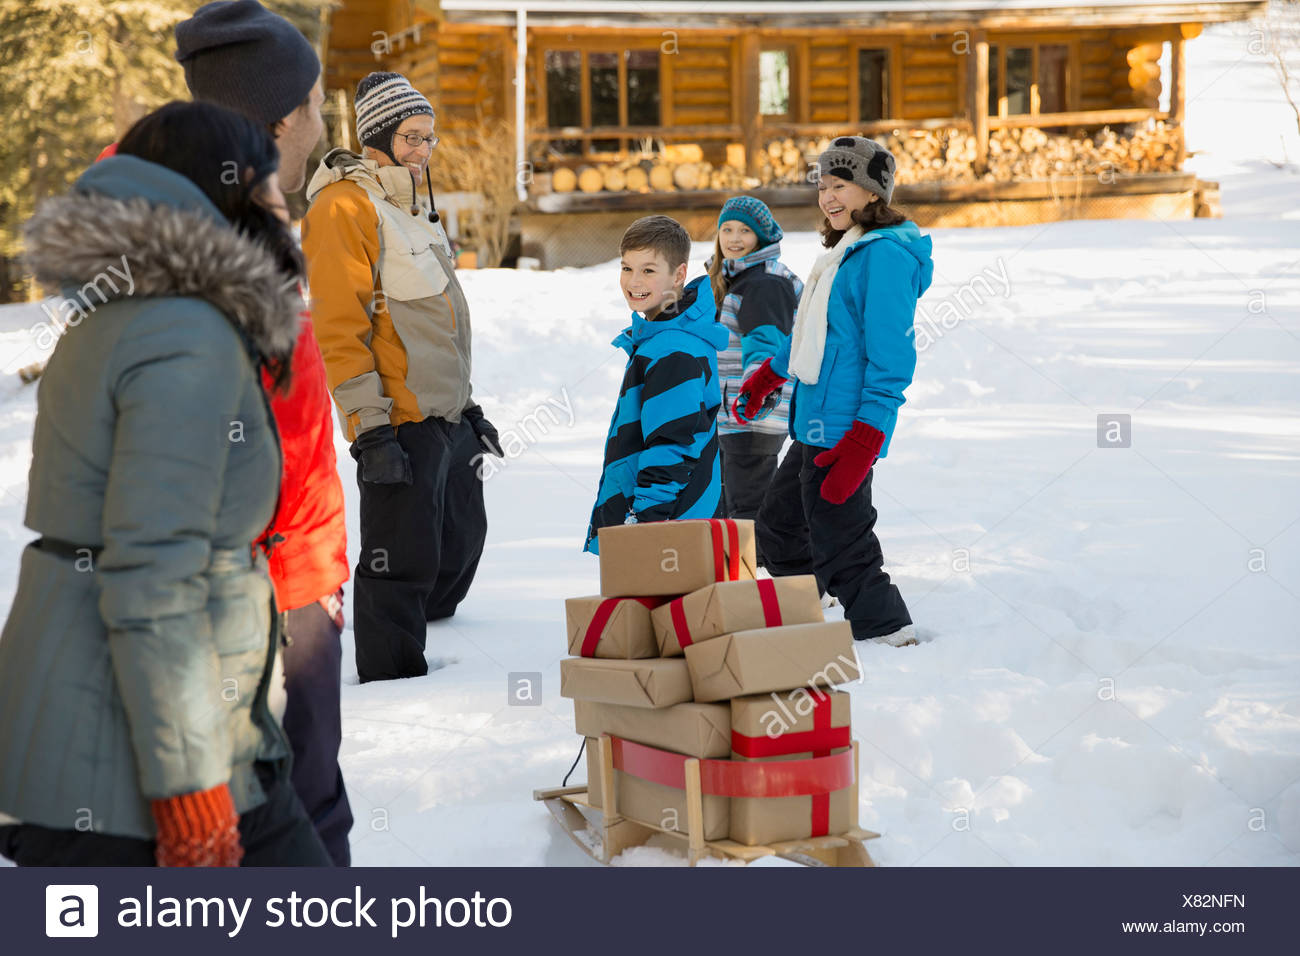 Family walking to cabin with stack of gifts Stock Photo